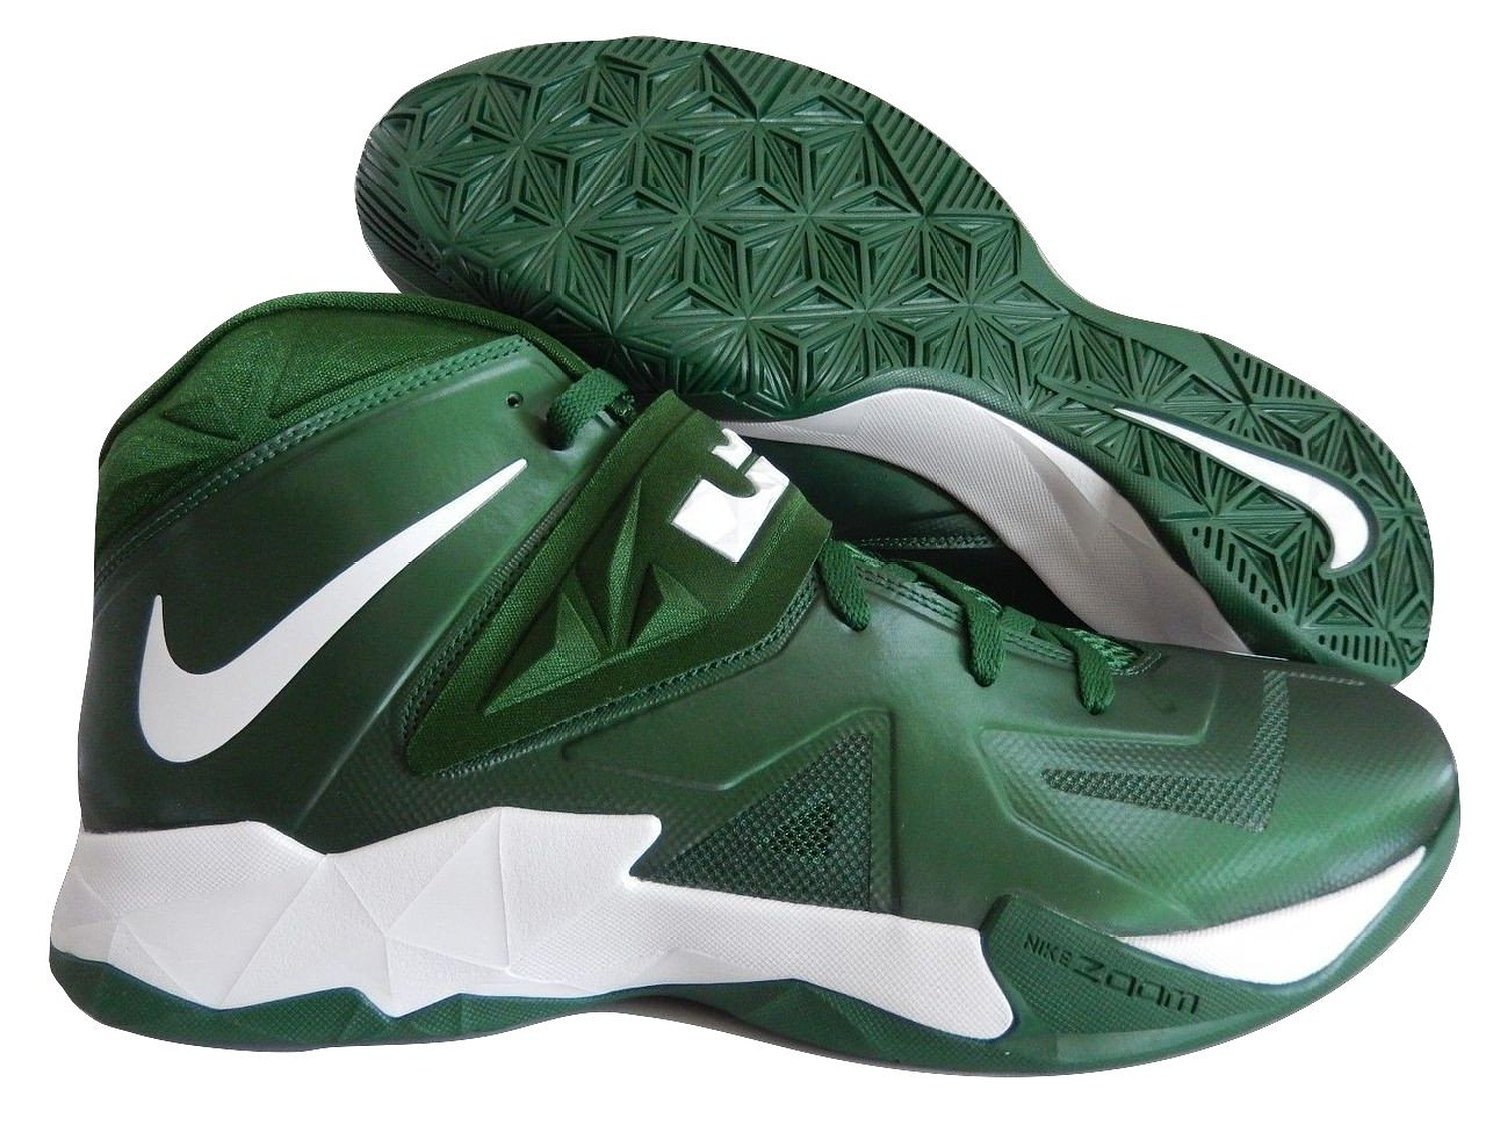 new arrivals 781f2 5f5a4 Buy Nike Zoom HyperEnforcer PE Men's Basketball Shoes Size 17 ...